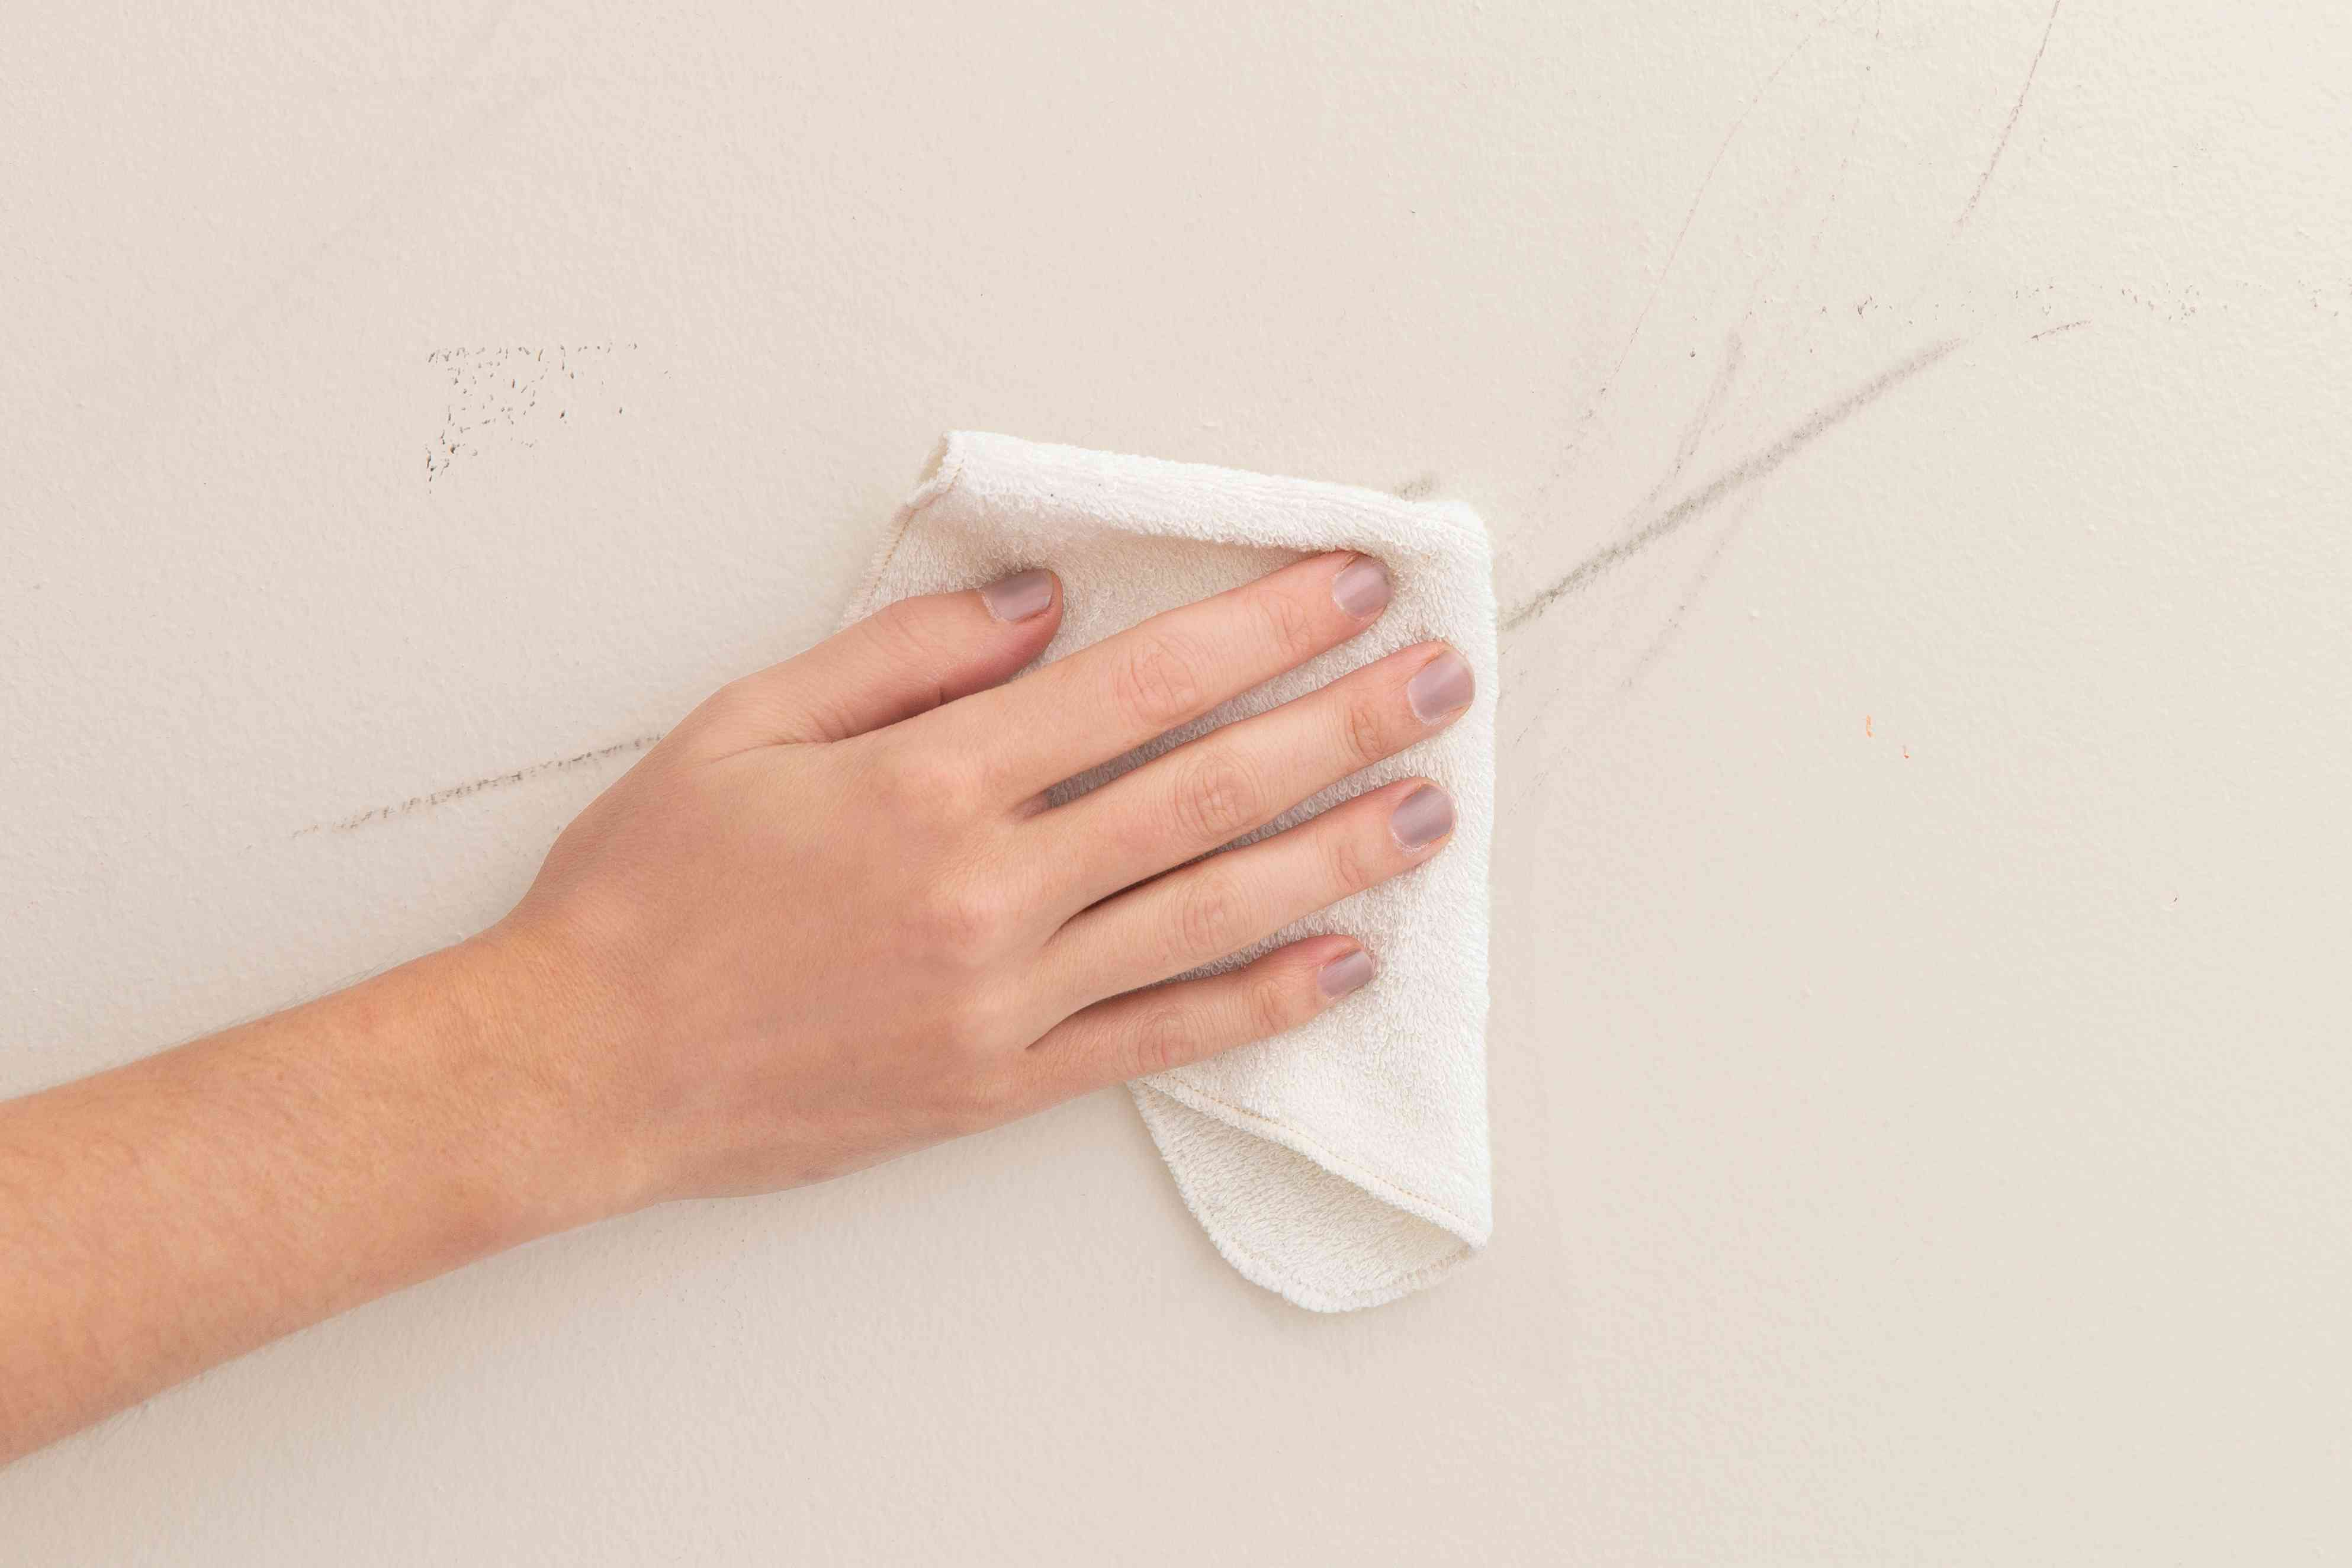 wiping scuff marks with a cloth and water